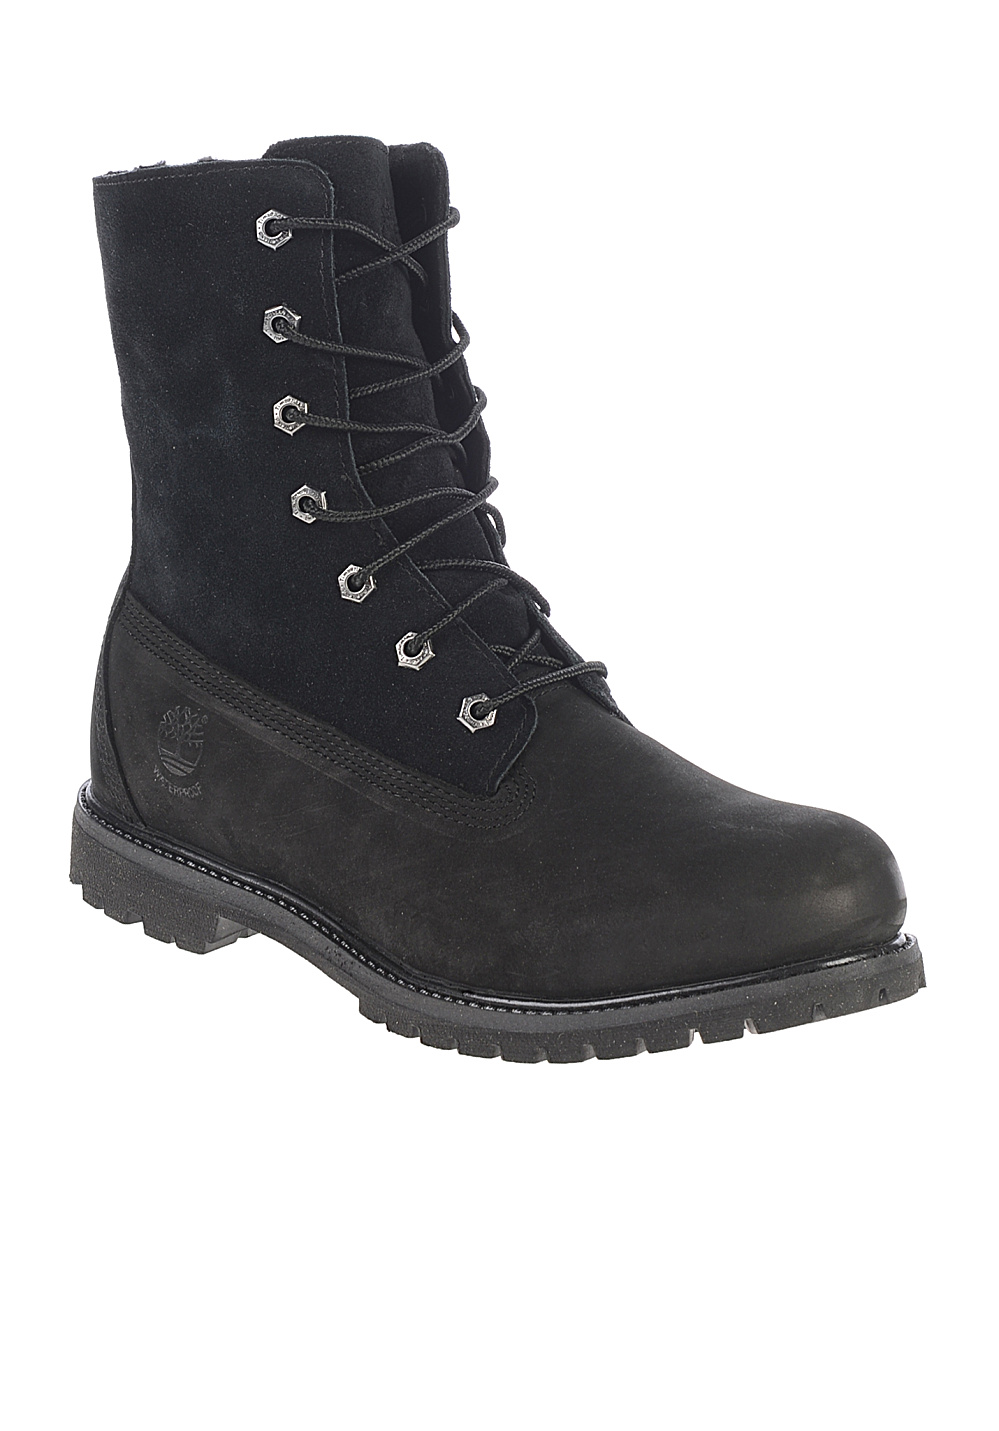 Timberland auth teddy fleece bottes pour femme noir planet sports - Botte timberland femme noir ...